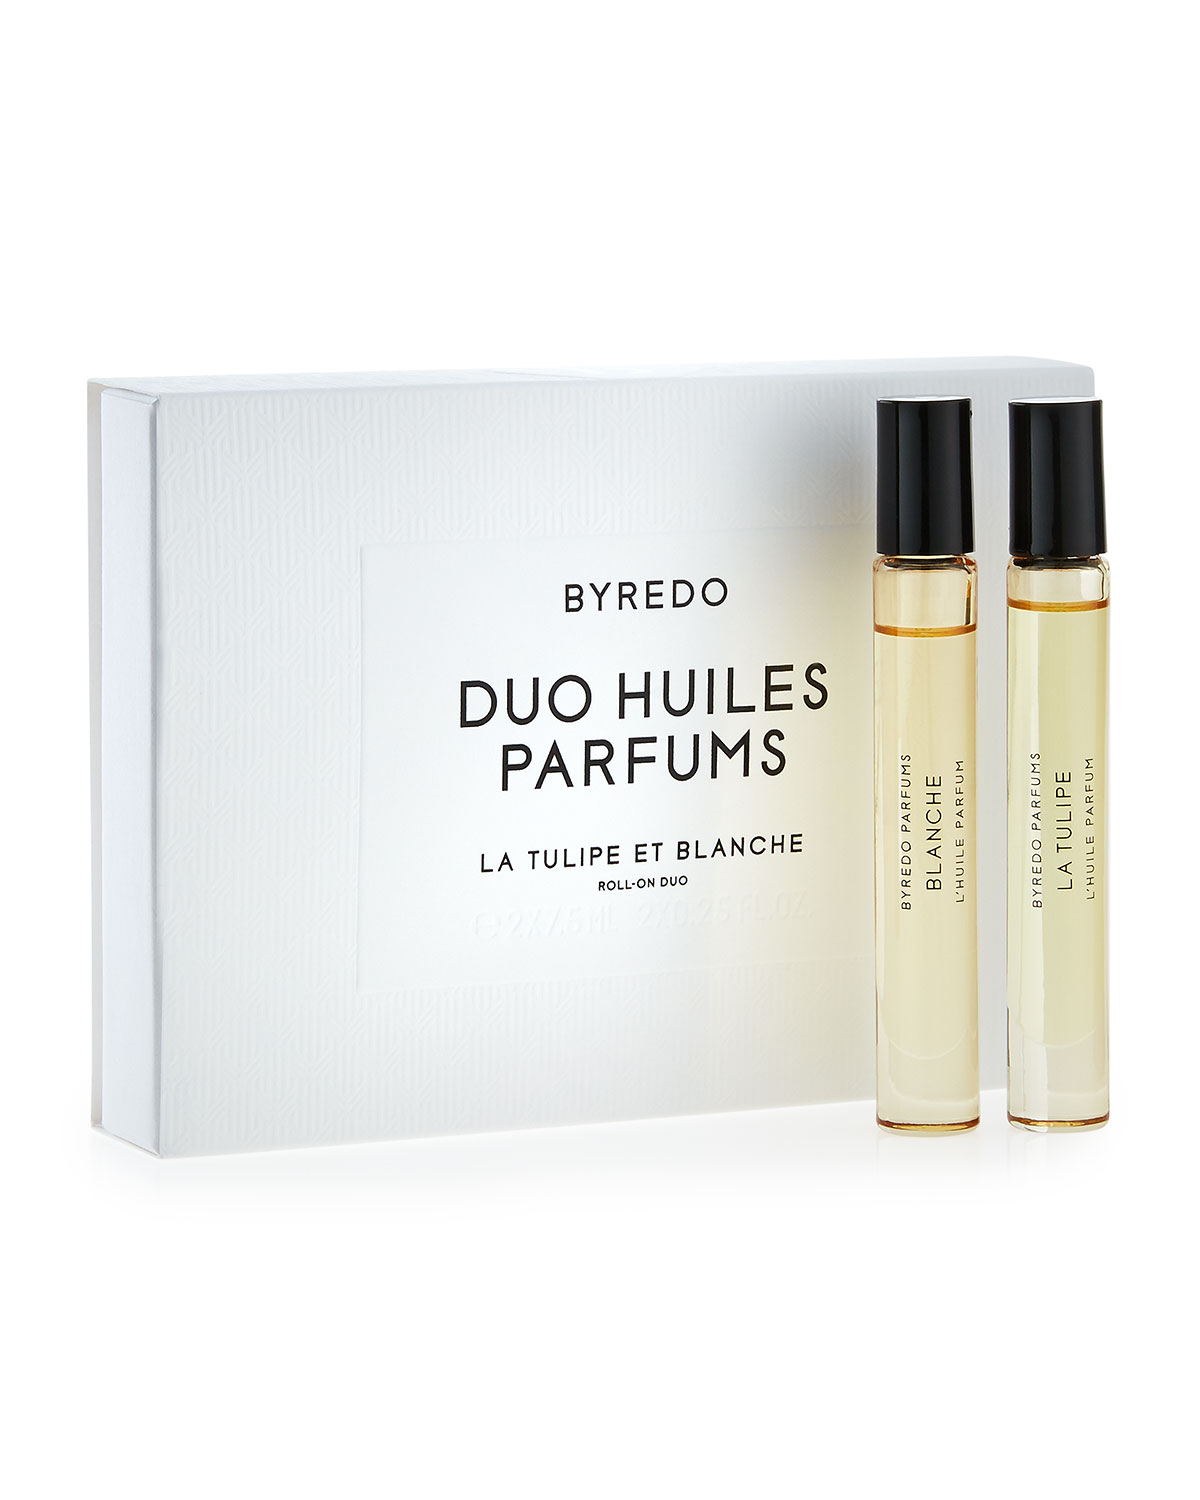 Byredo 0.25 oz. Roll-On Fragrance Duo